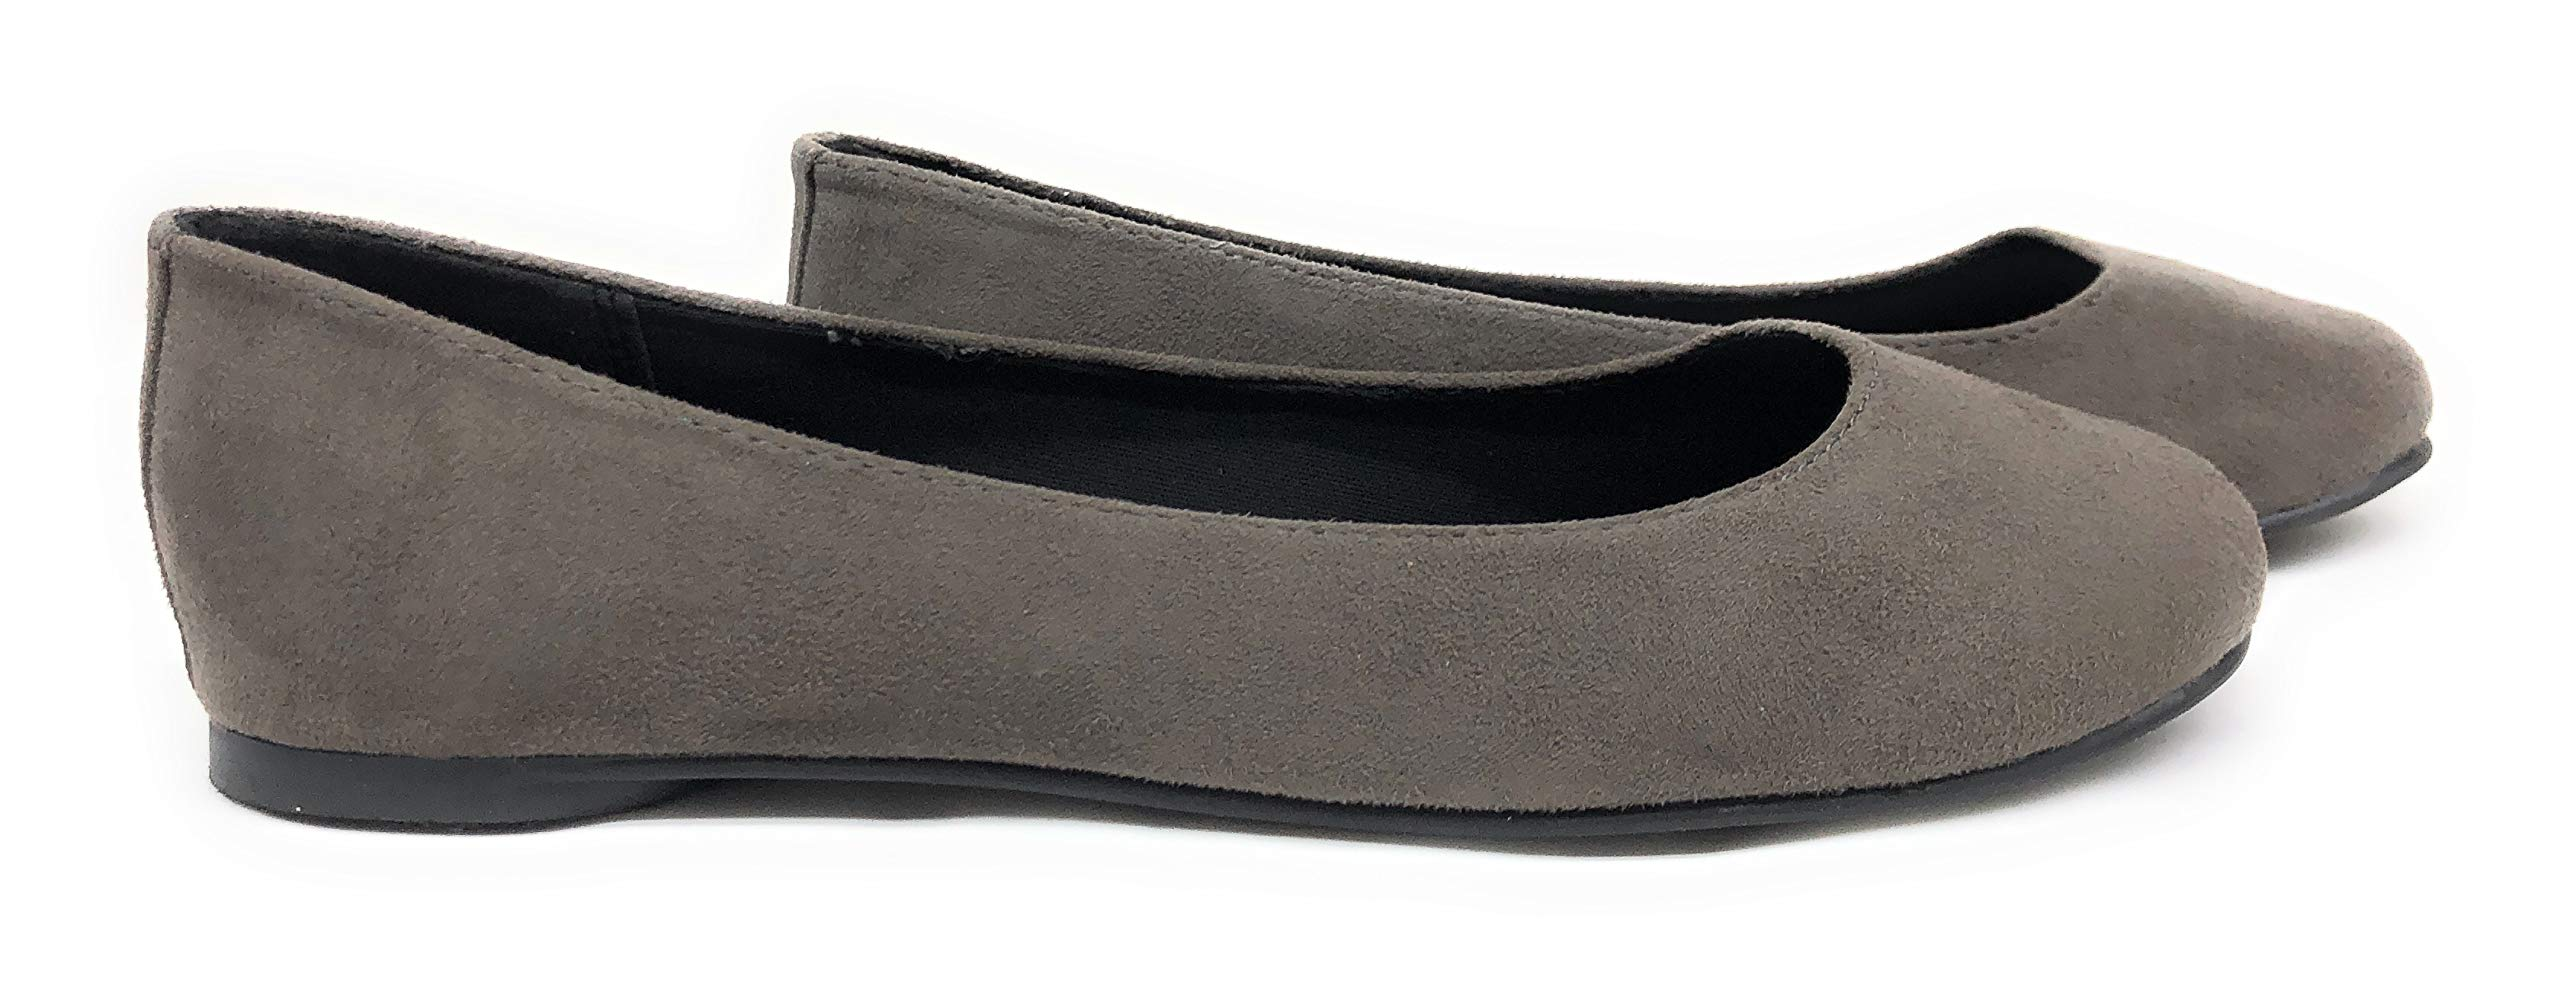 Soda Womens Round Toe Ballet Flat Shoes Charcoal 7